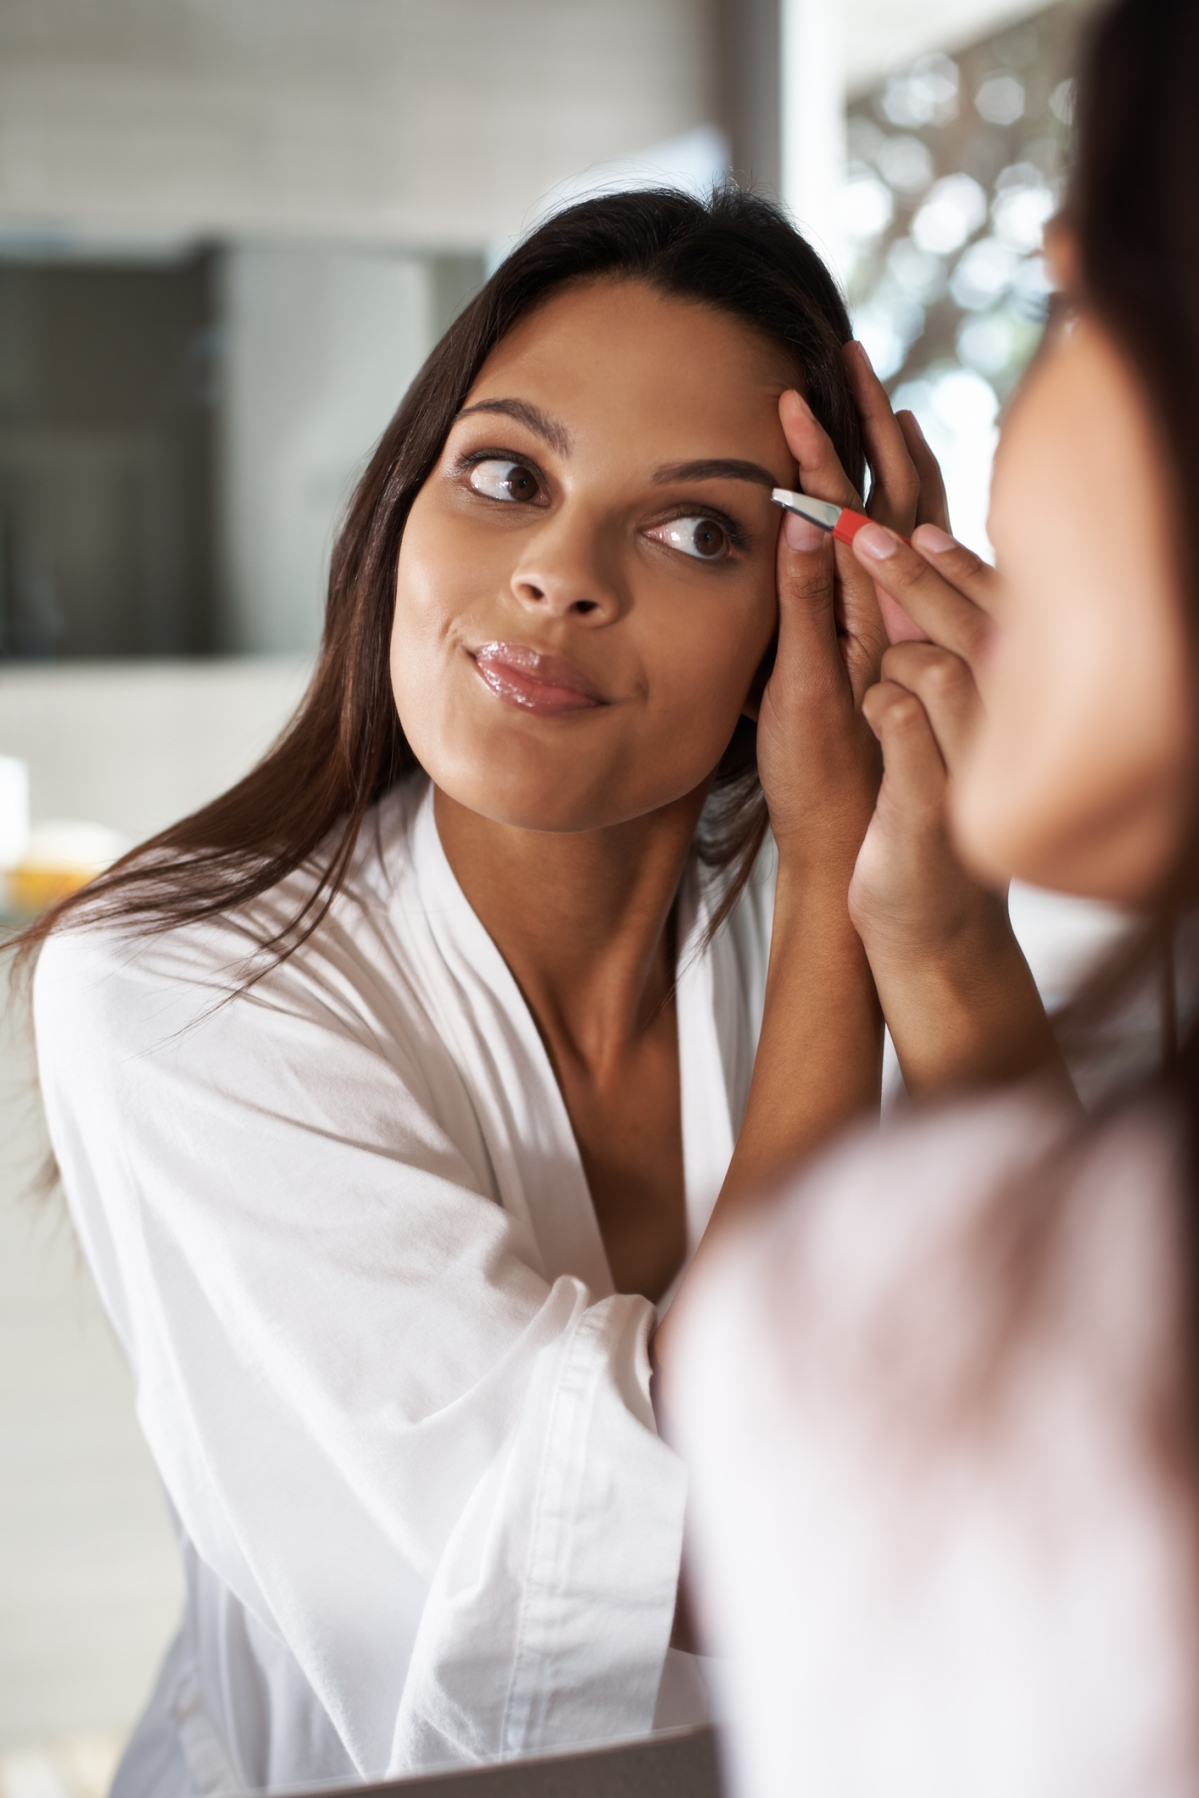 Make Up Tips: Lazy Girl Makeup Hacks to Look Polished and On-Point